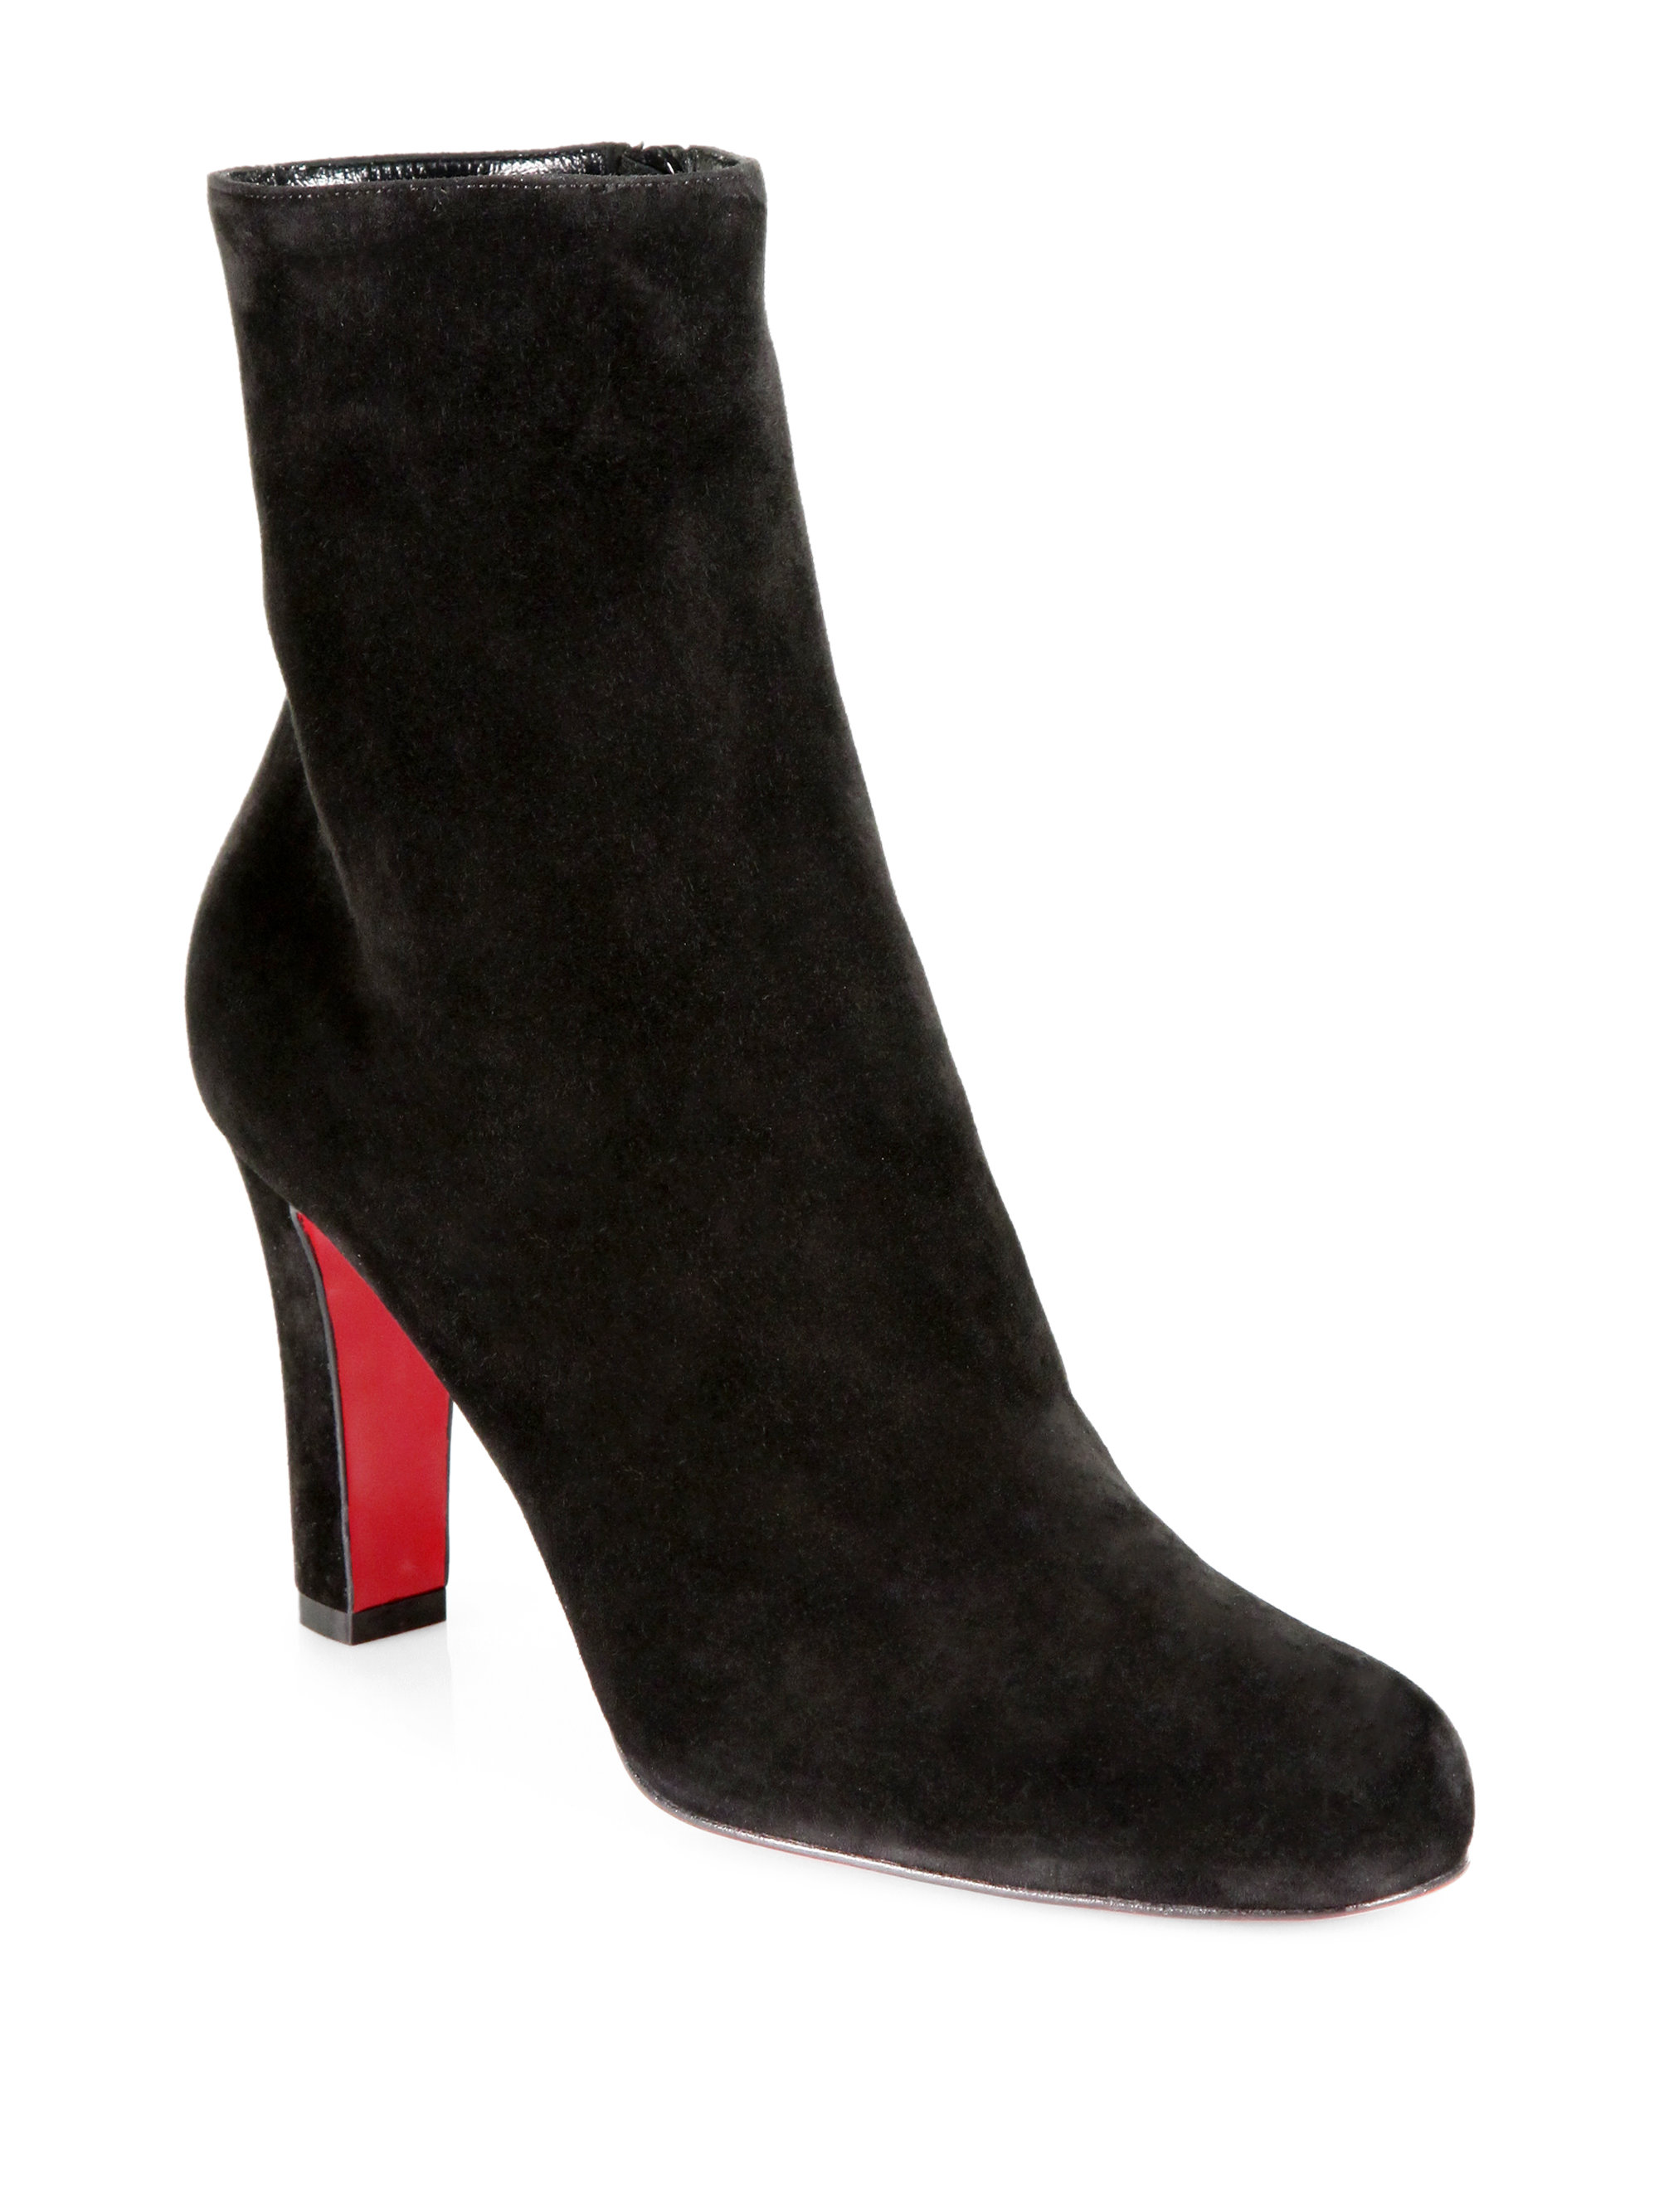 brand new 614a9 565e2 france christian louboutin suede ankle boots 261db 4330e